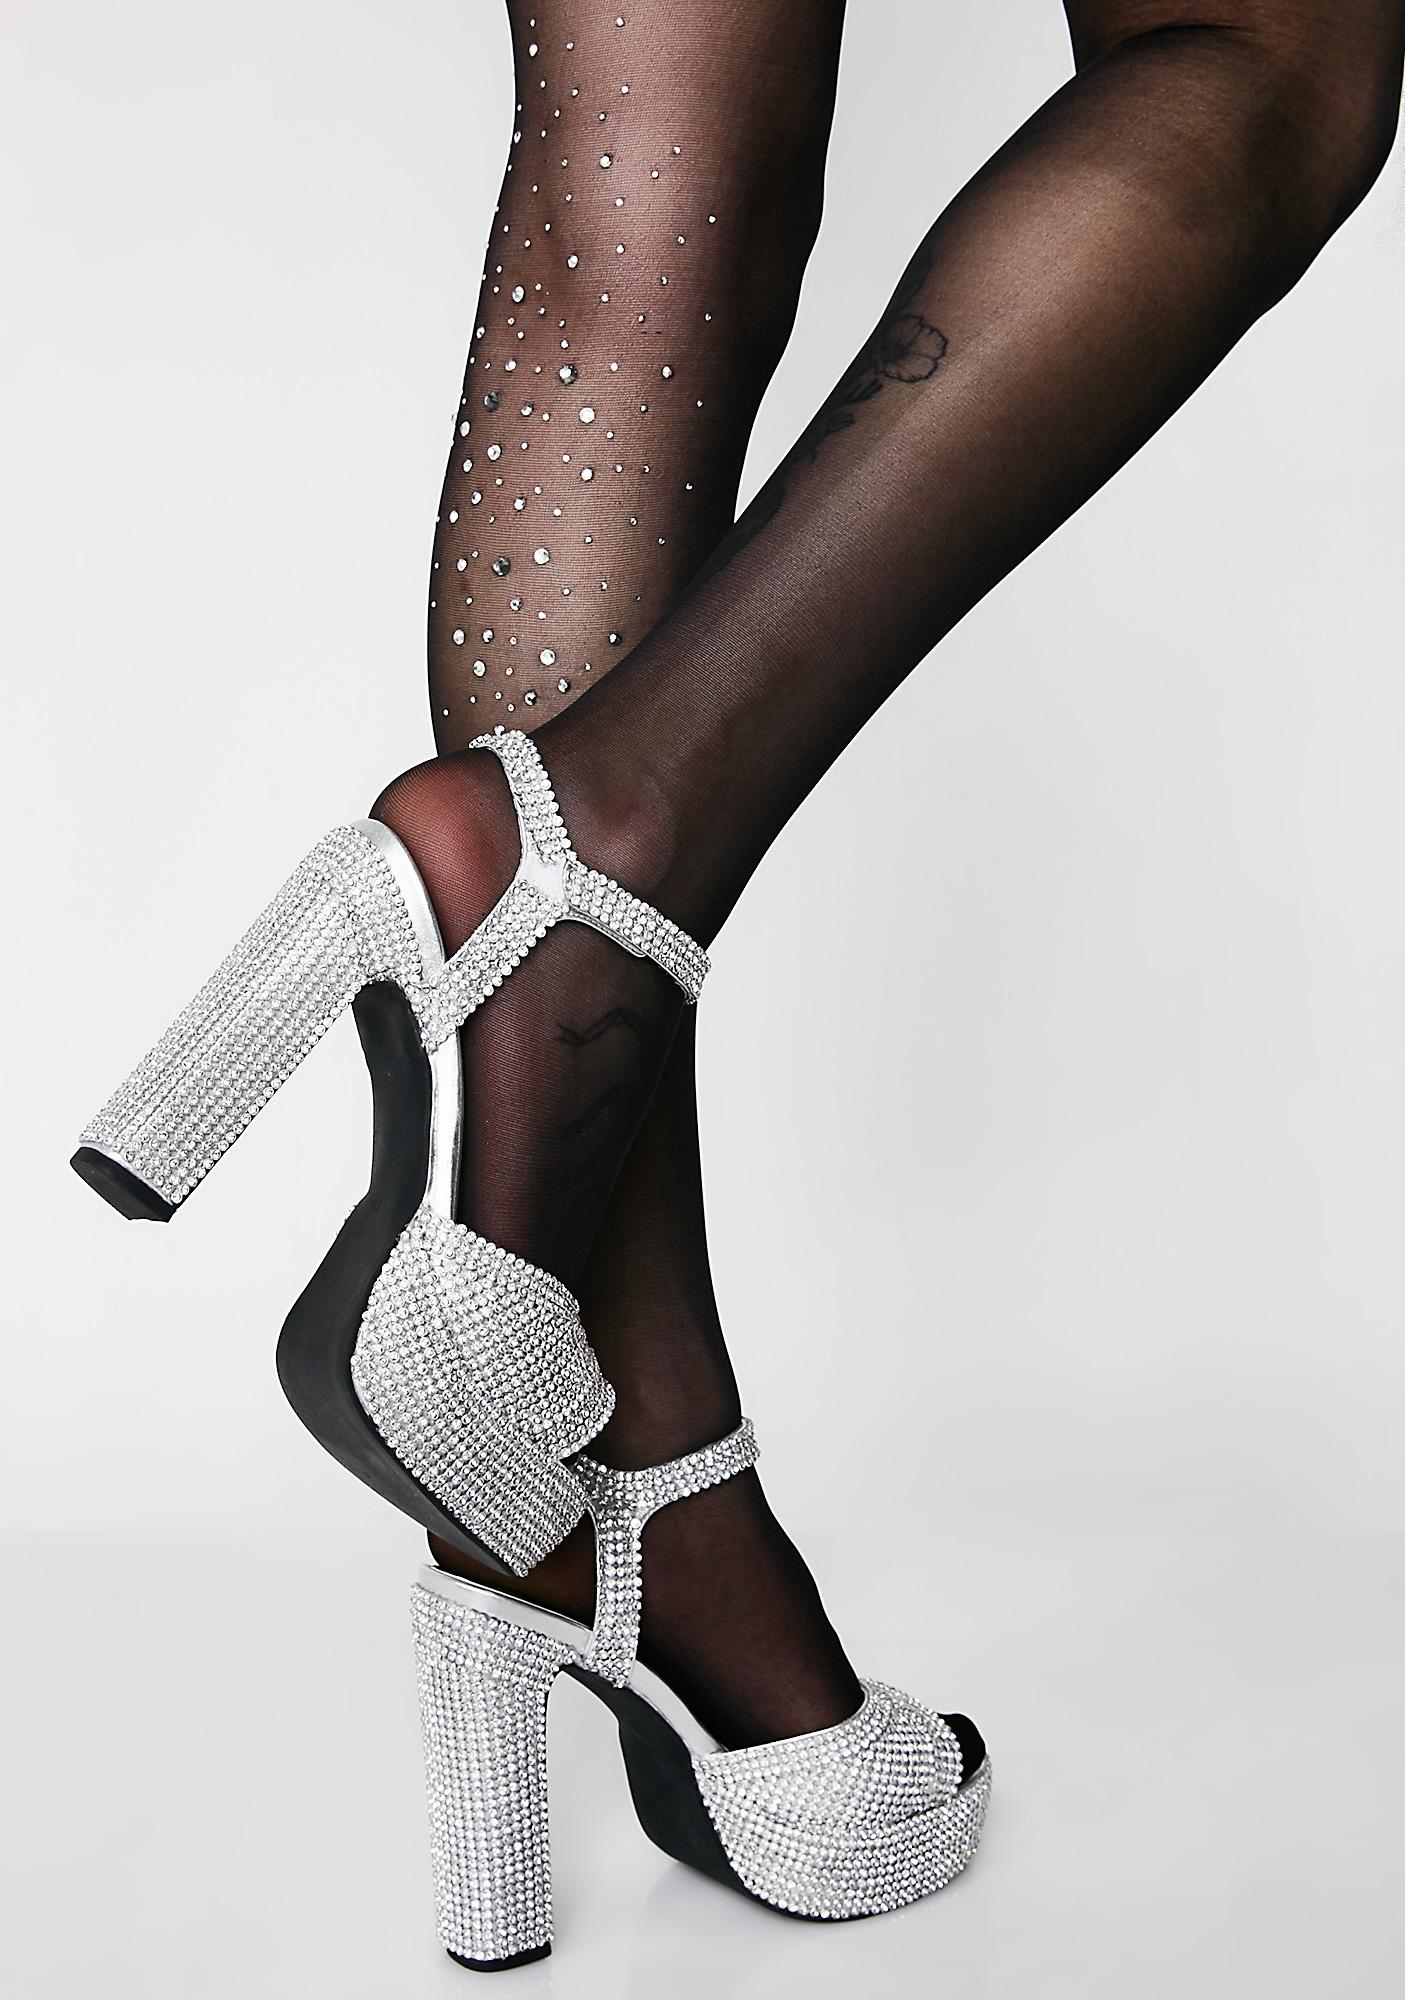 Haute Topic Sheer Tights